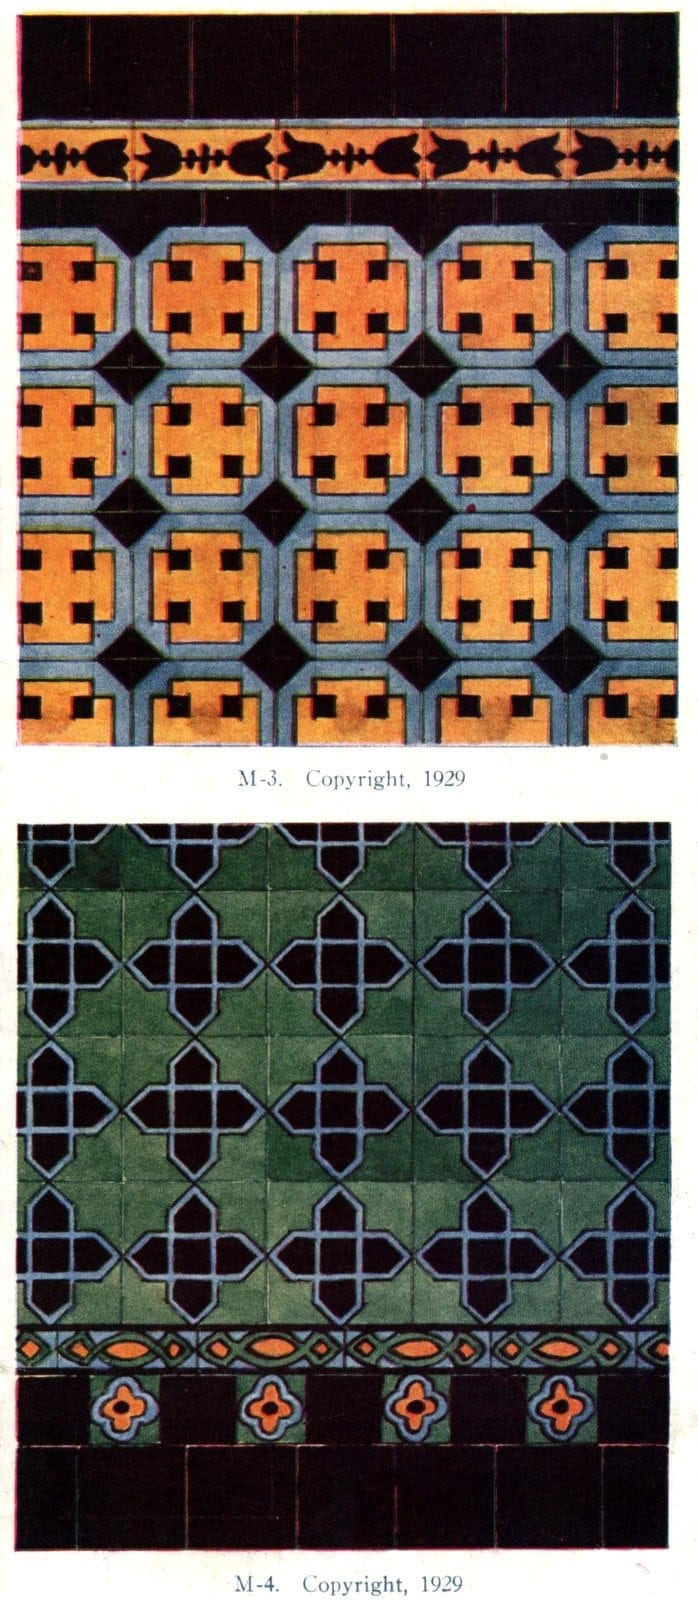 Authentic 20s tile designs and patterns from the home from 1929 at Click Americana (1)